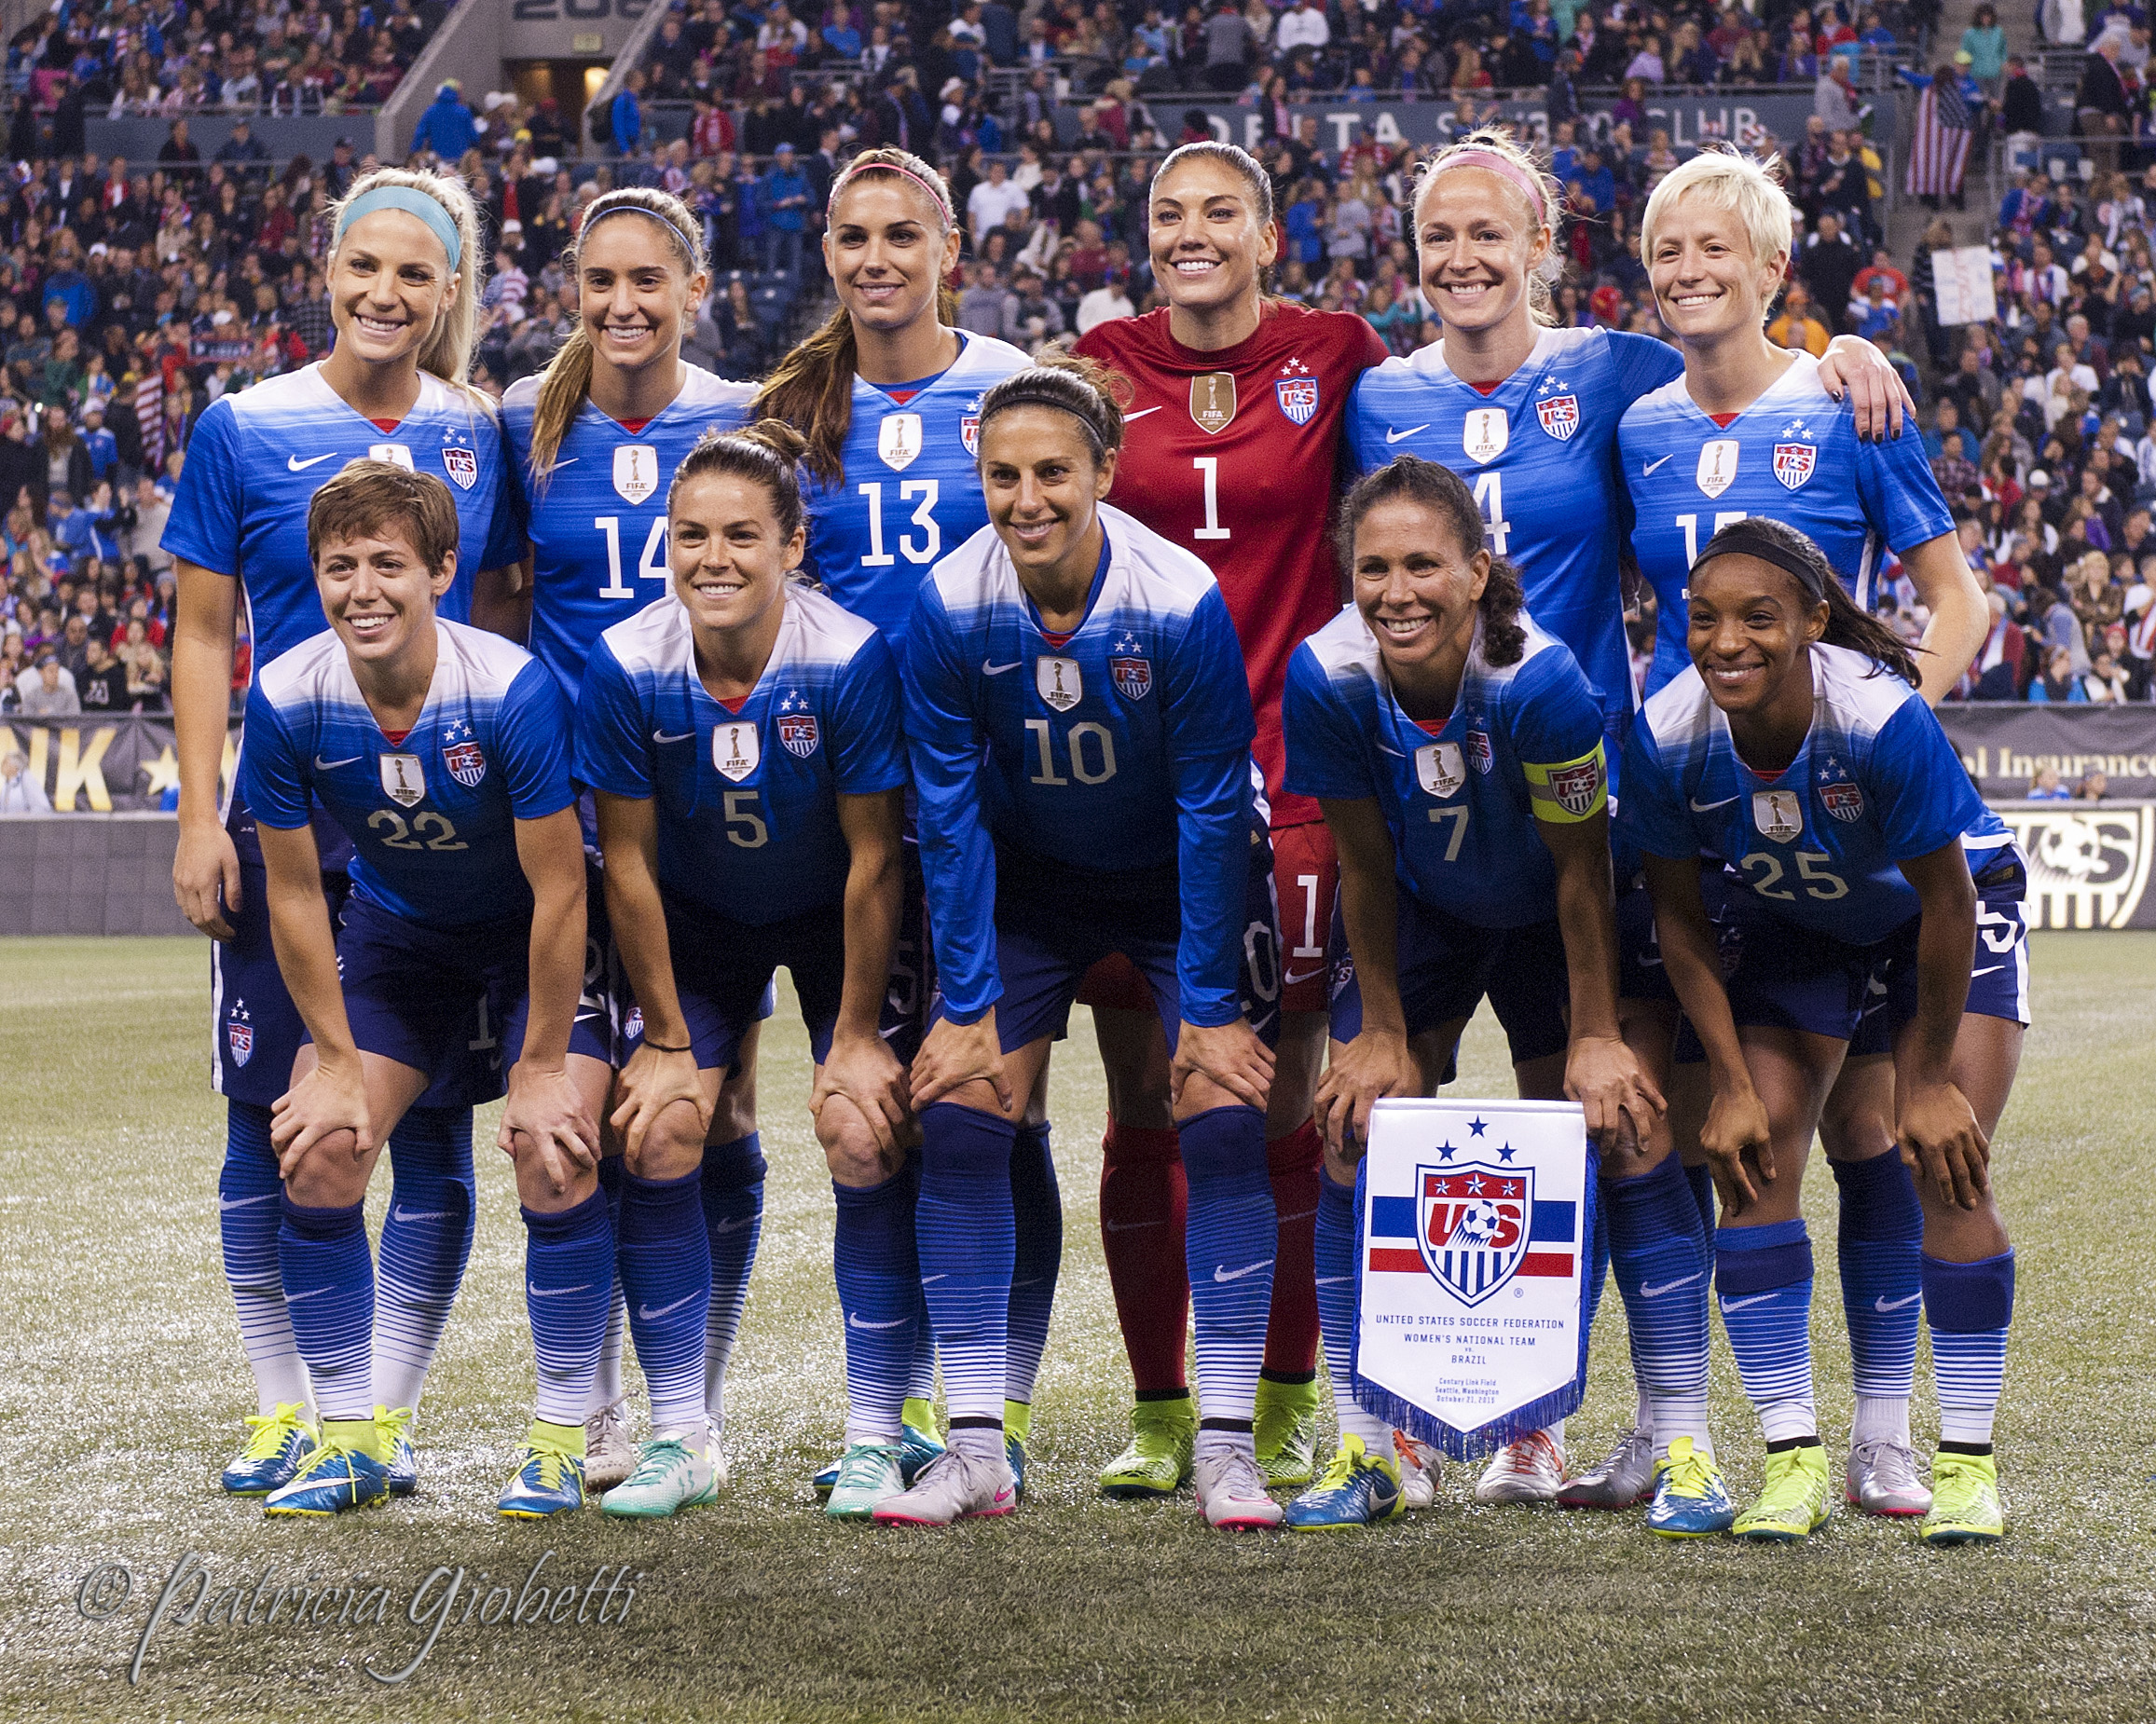 e667a8dee Carli Lloyd (10) and Becky Sauerbrunn (4) are the new captains of